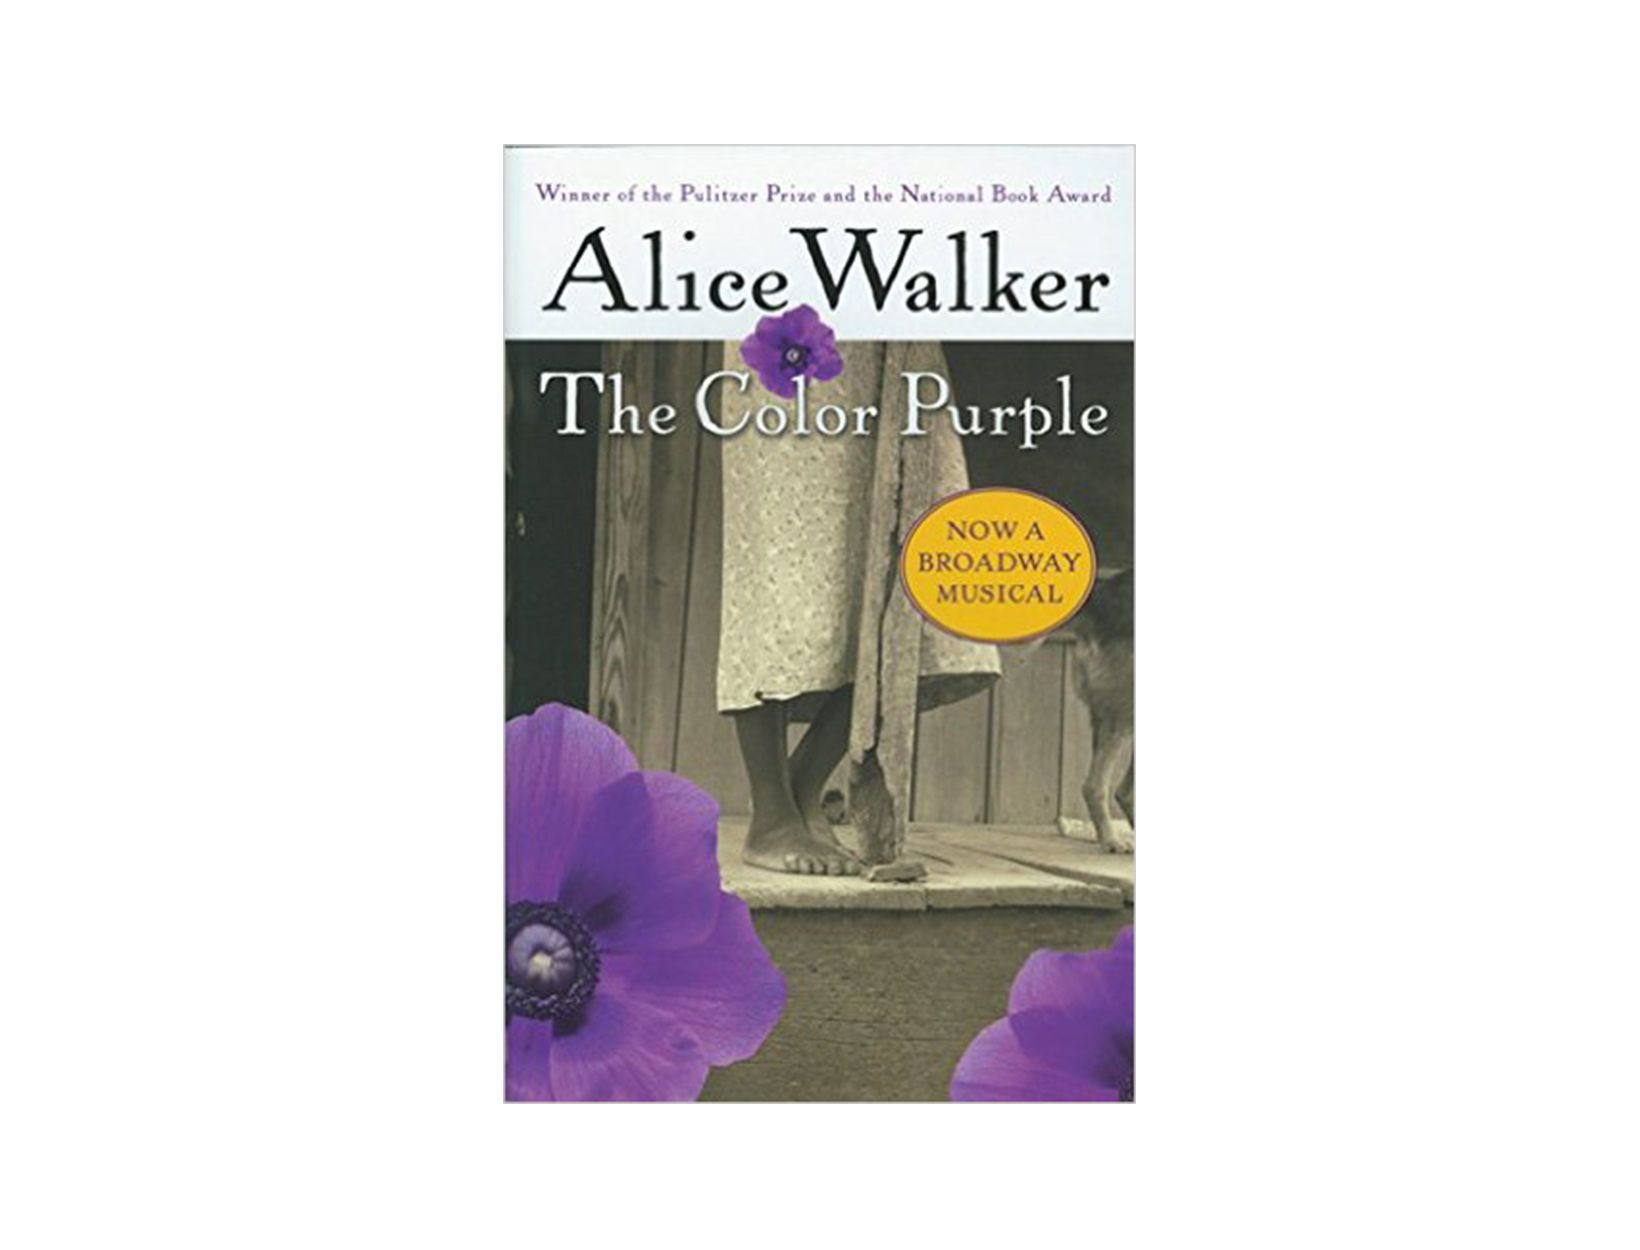 the color purple novel analysis essay The essay explores the ways in which the novel the color purple was tailored to meet the genre requirements of musical theater when it was adapted for the broadway stage in 2006 specific attention is paid to how the color purple was rhetorically normalized to align it within the genre.